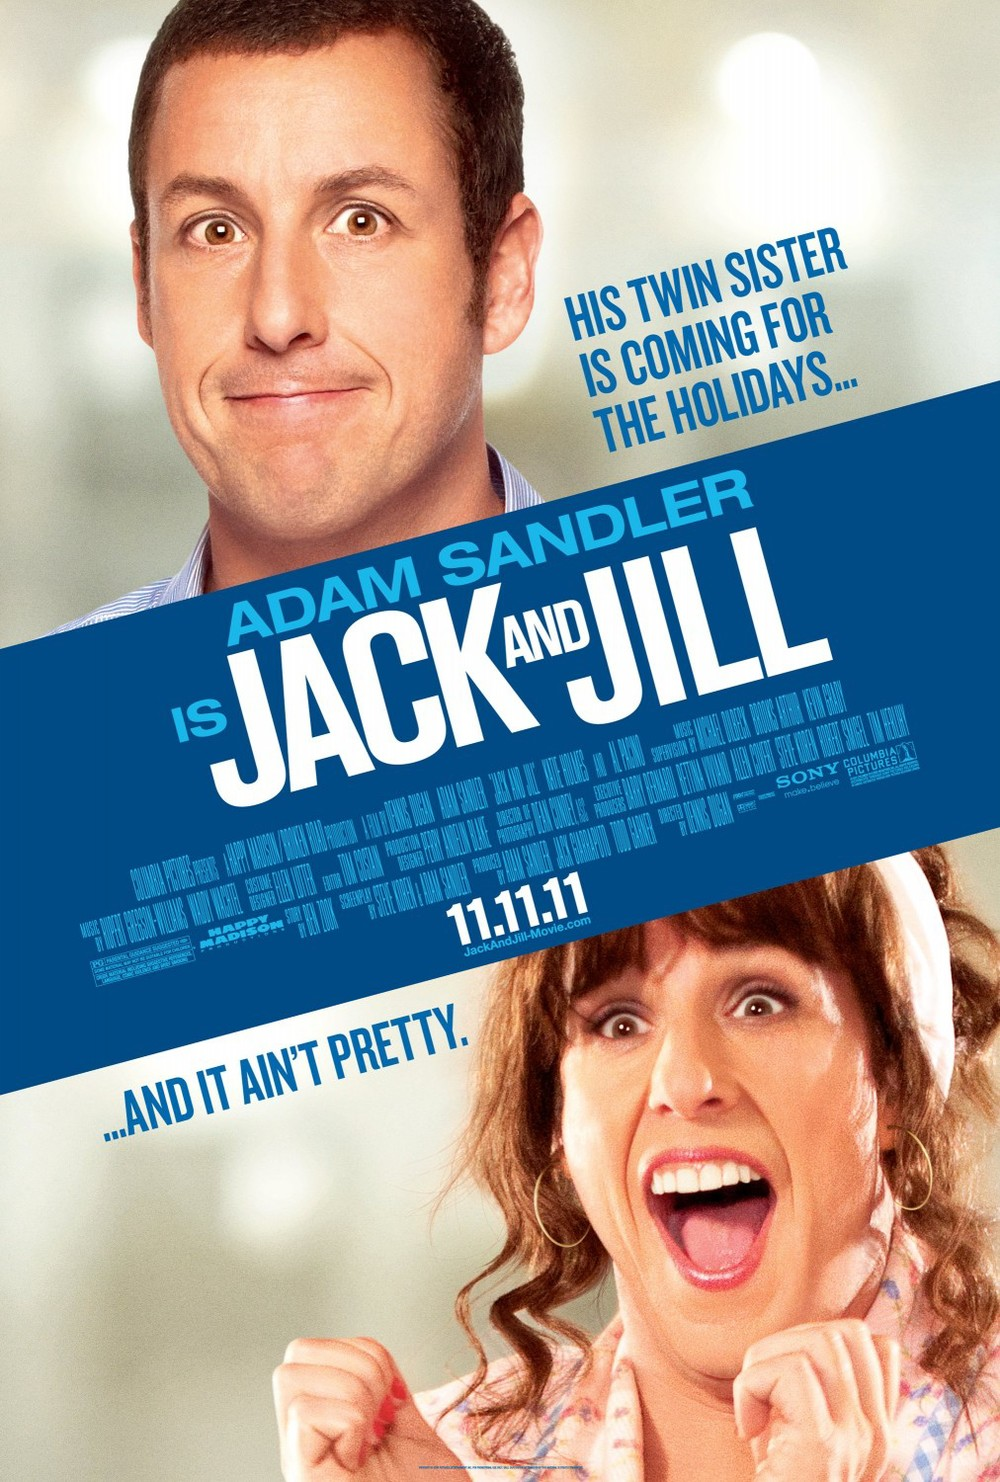 jack_and_jill_xlg.jpg